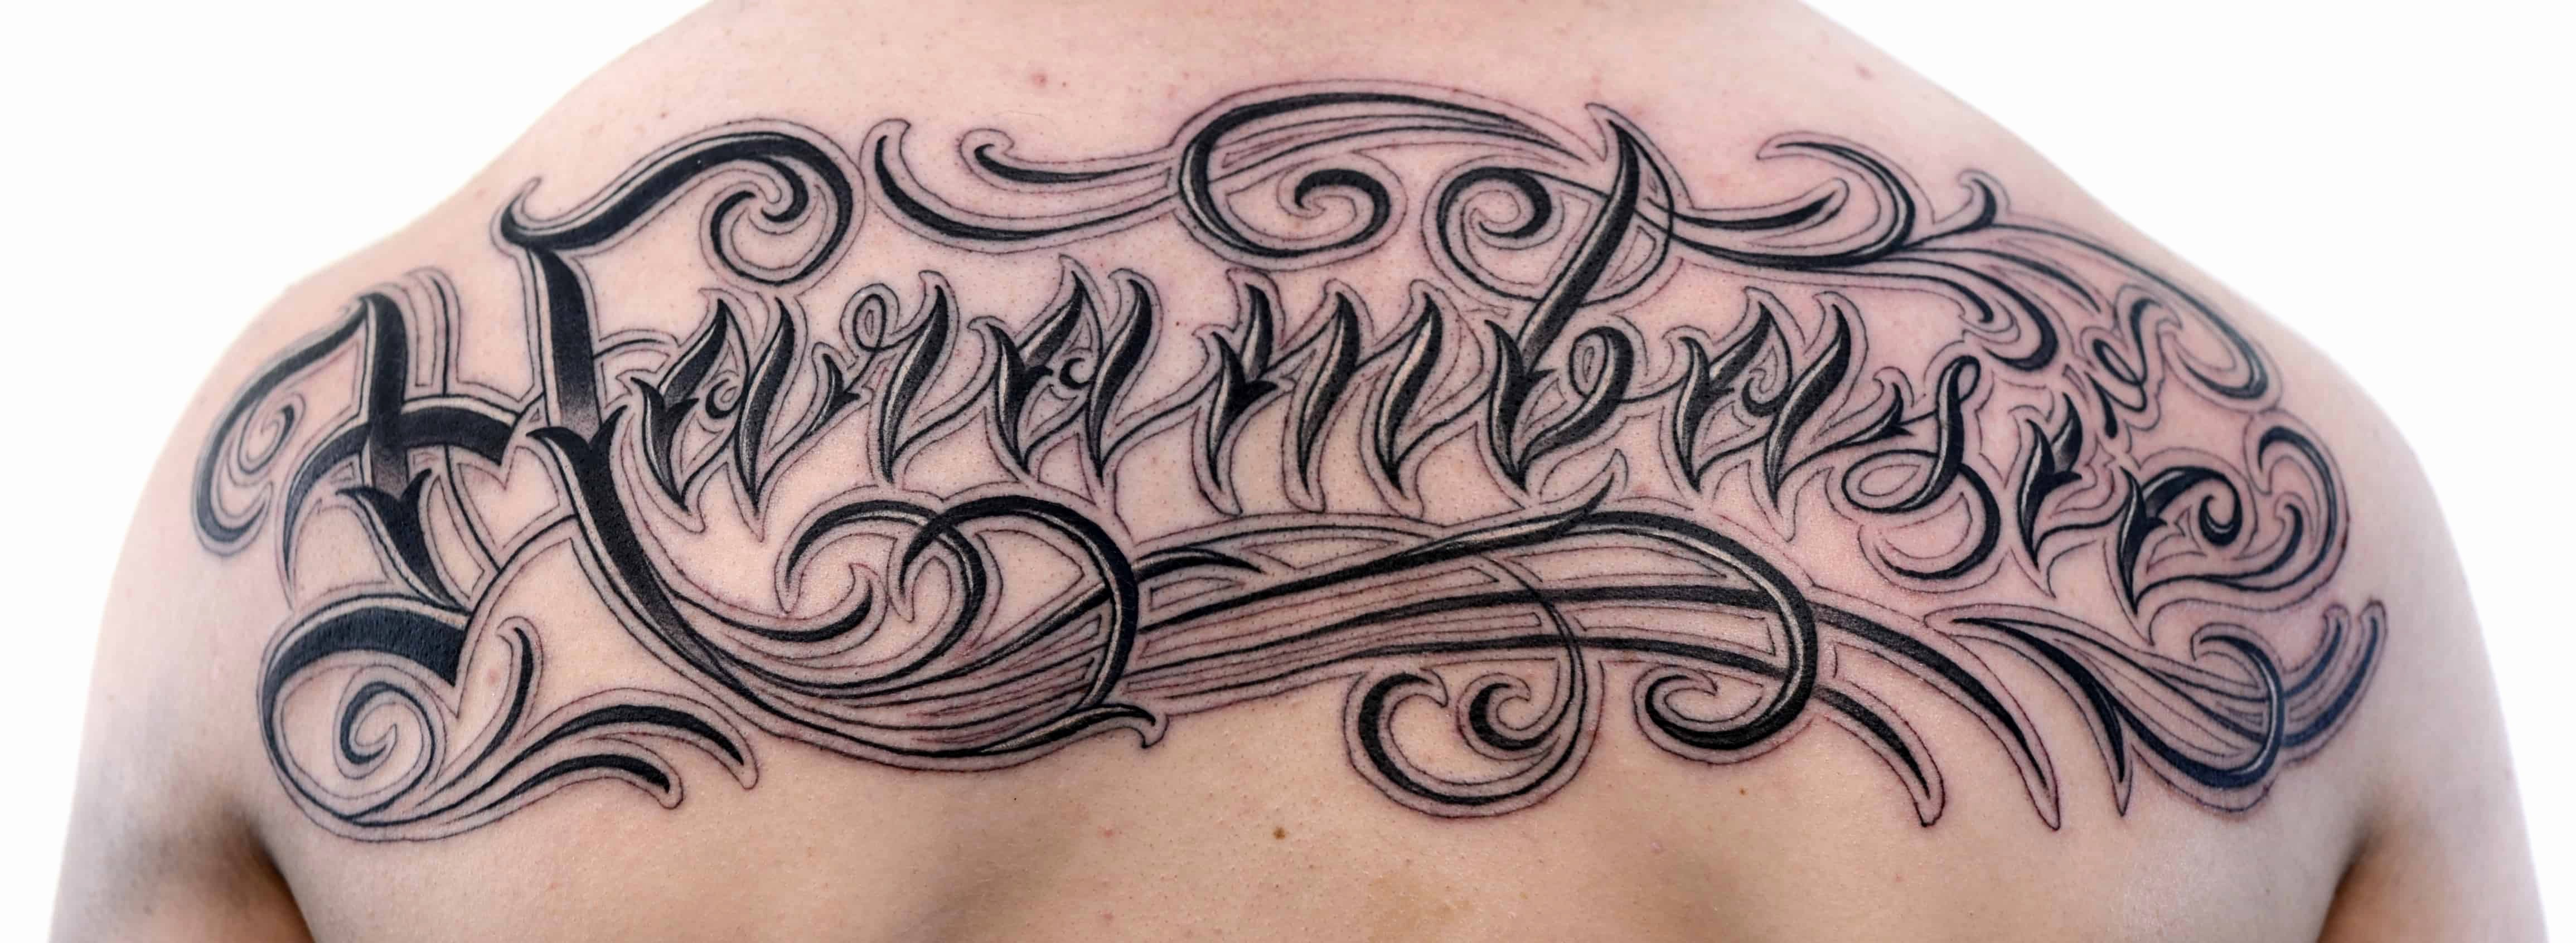 Calligraphy Font for Tattoo Beautiful Custom Script Writing Tattoo On the Back Chronic Ink